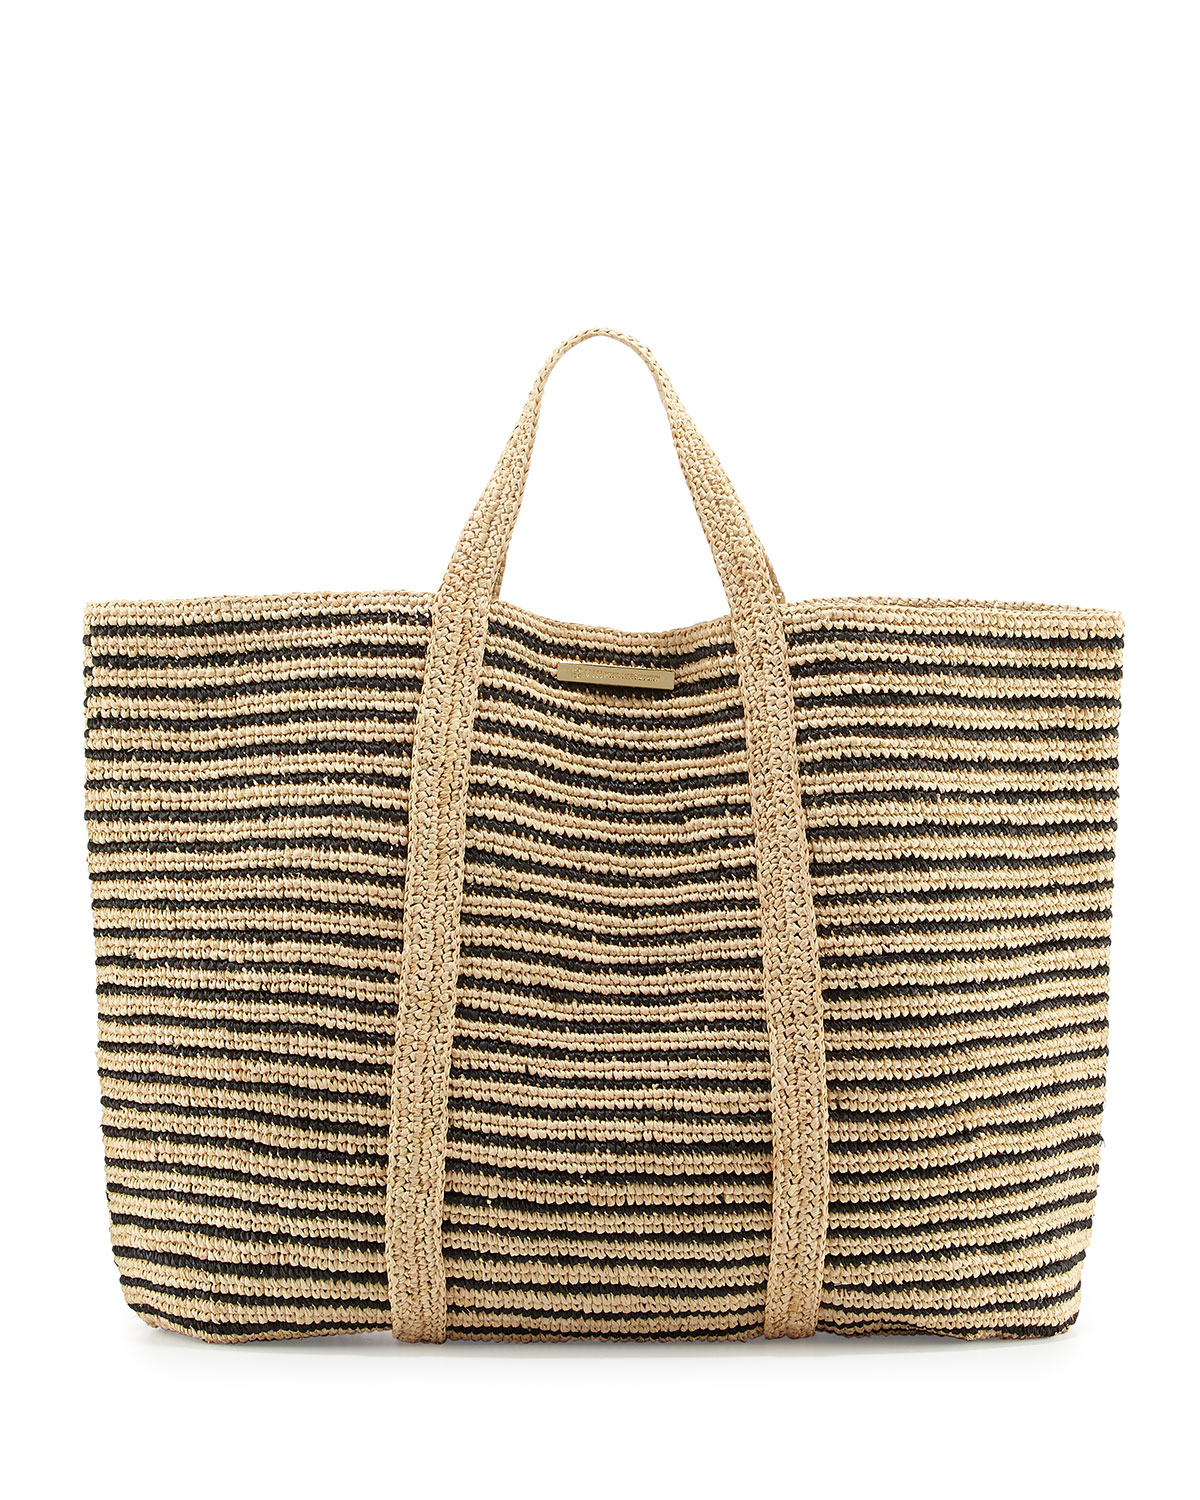 Vix Woven Striped Beach Tote Bag in Metallic | Lyst